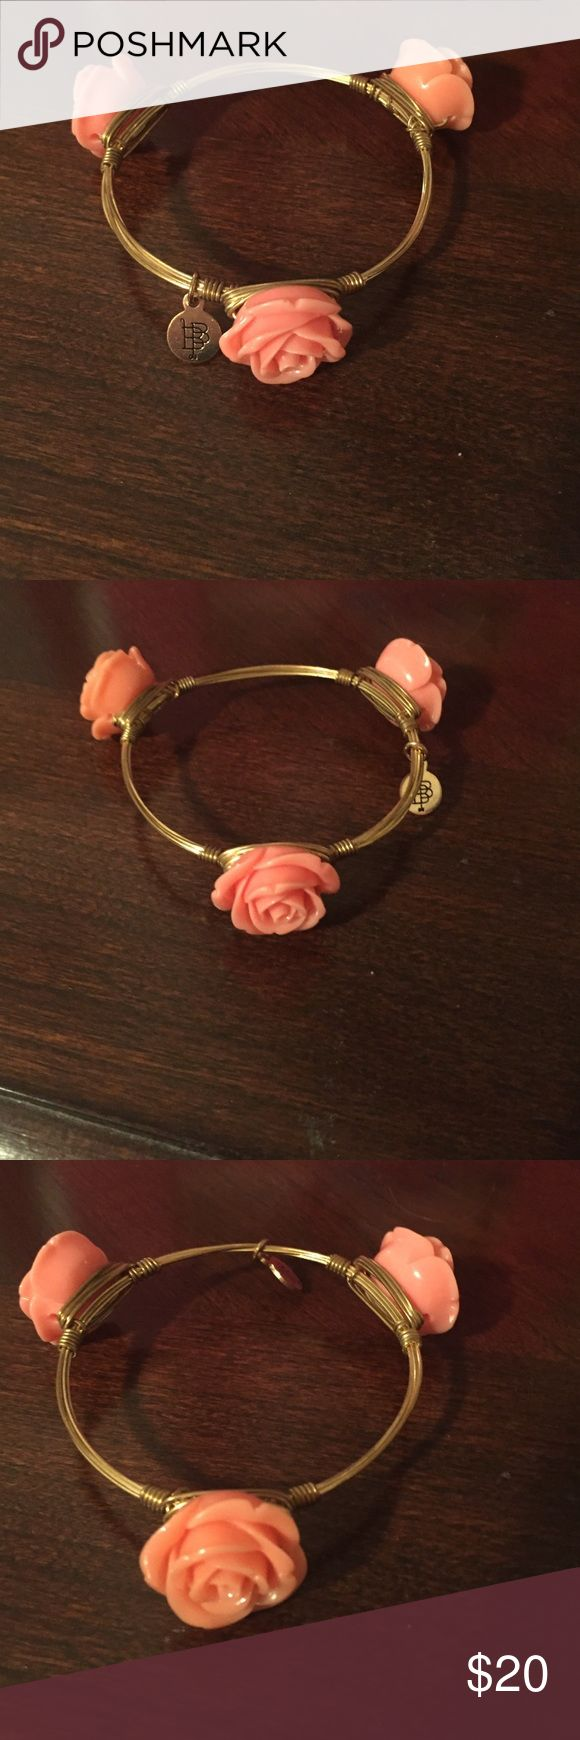 Bourbon & Bowties bangle Coral rosette bangle! Standard size. Petite enough to be worn in a stack or by itself! Bourbon and Bowties Jewelry Bracelets